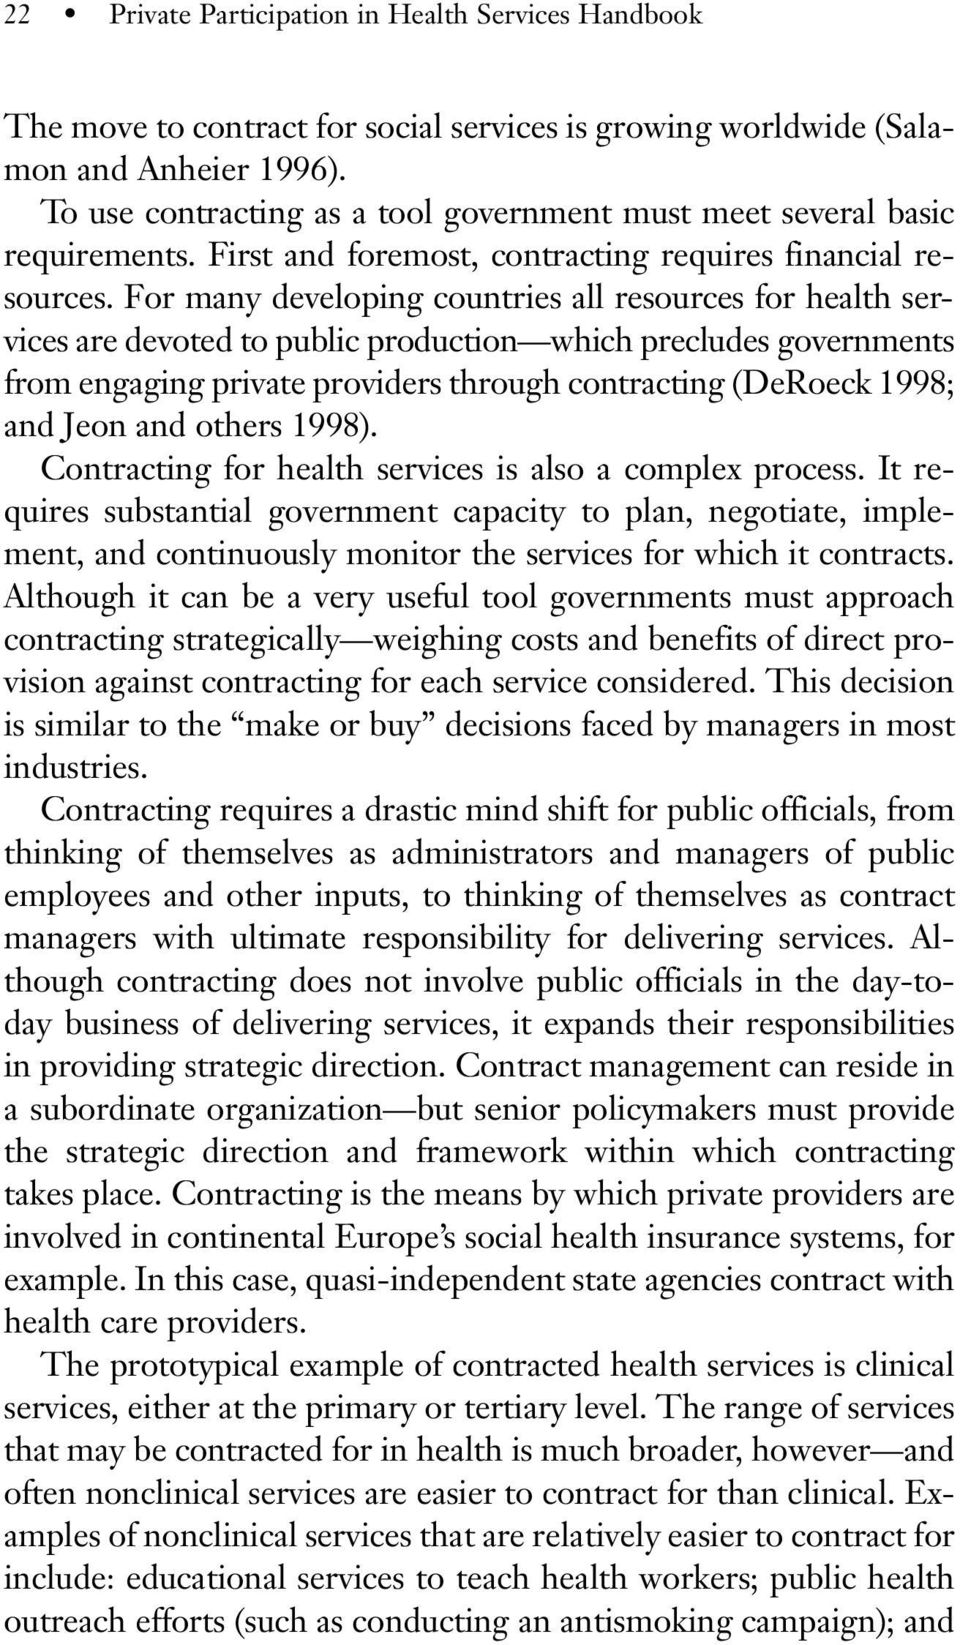 For many developing countries all resources for health services are devoted to public production which precludes governments from engaging private providers through contracting (DeRoeck 1998; and